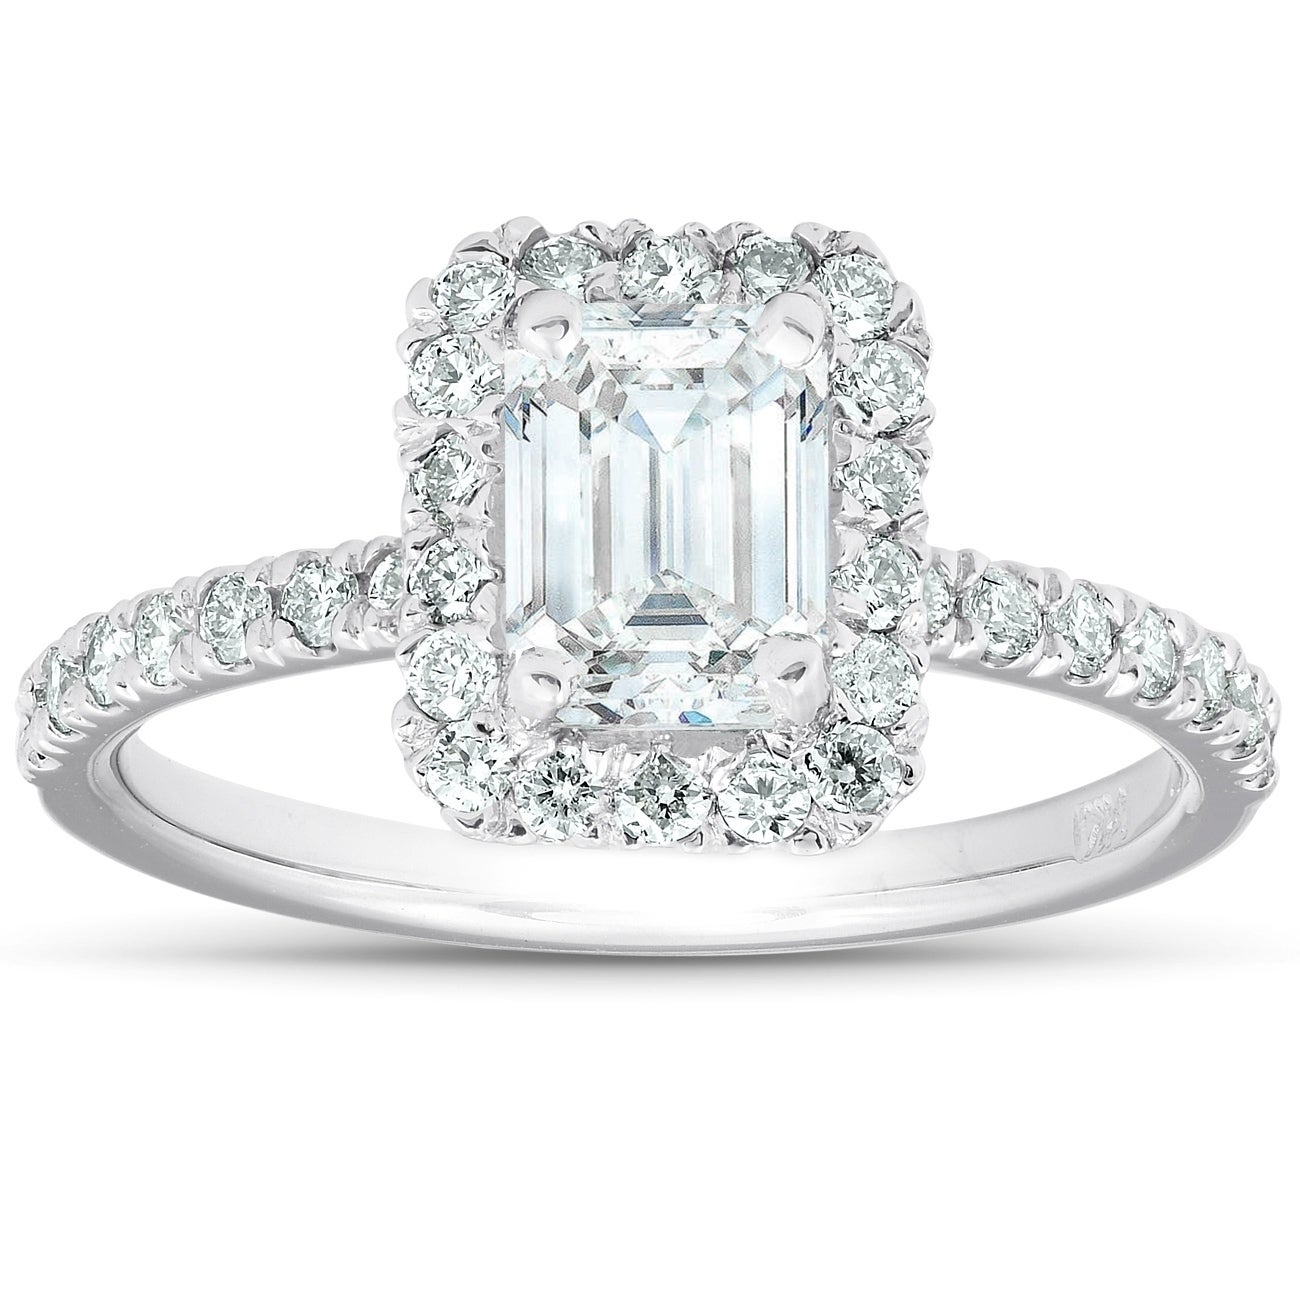 Shop 1 1 2 Ct Emerald Cut Diamond Halo Engagement Ring 14k White Gold Overstock 28713430